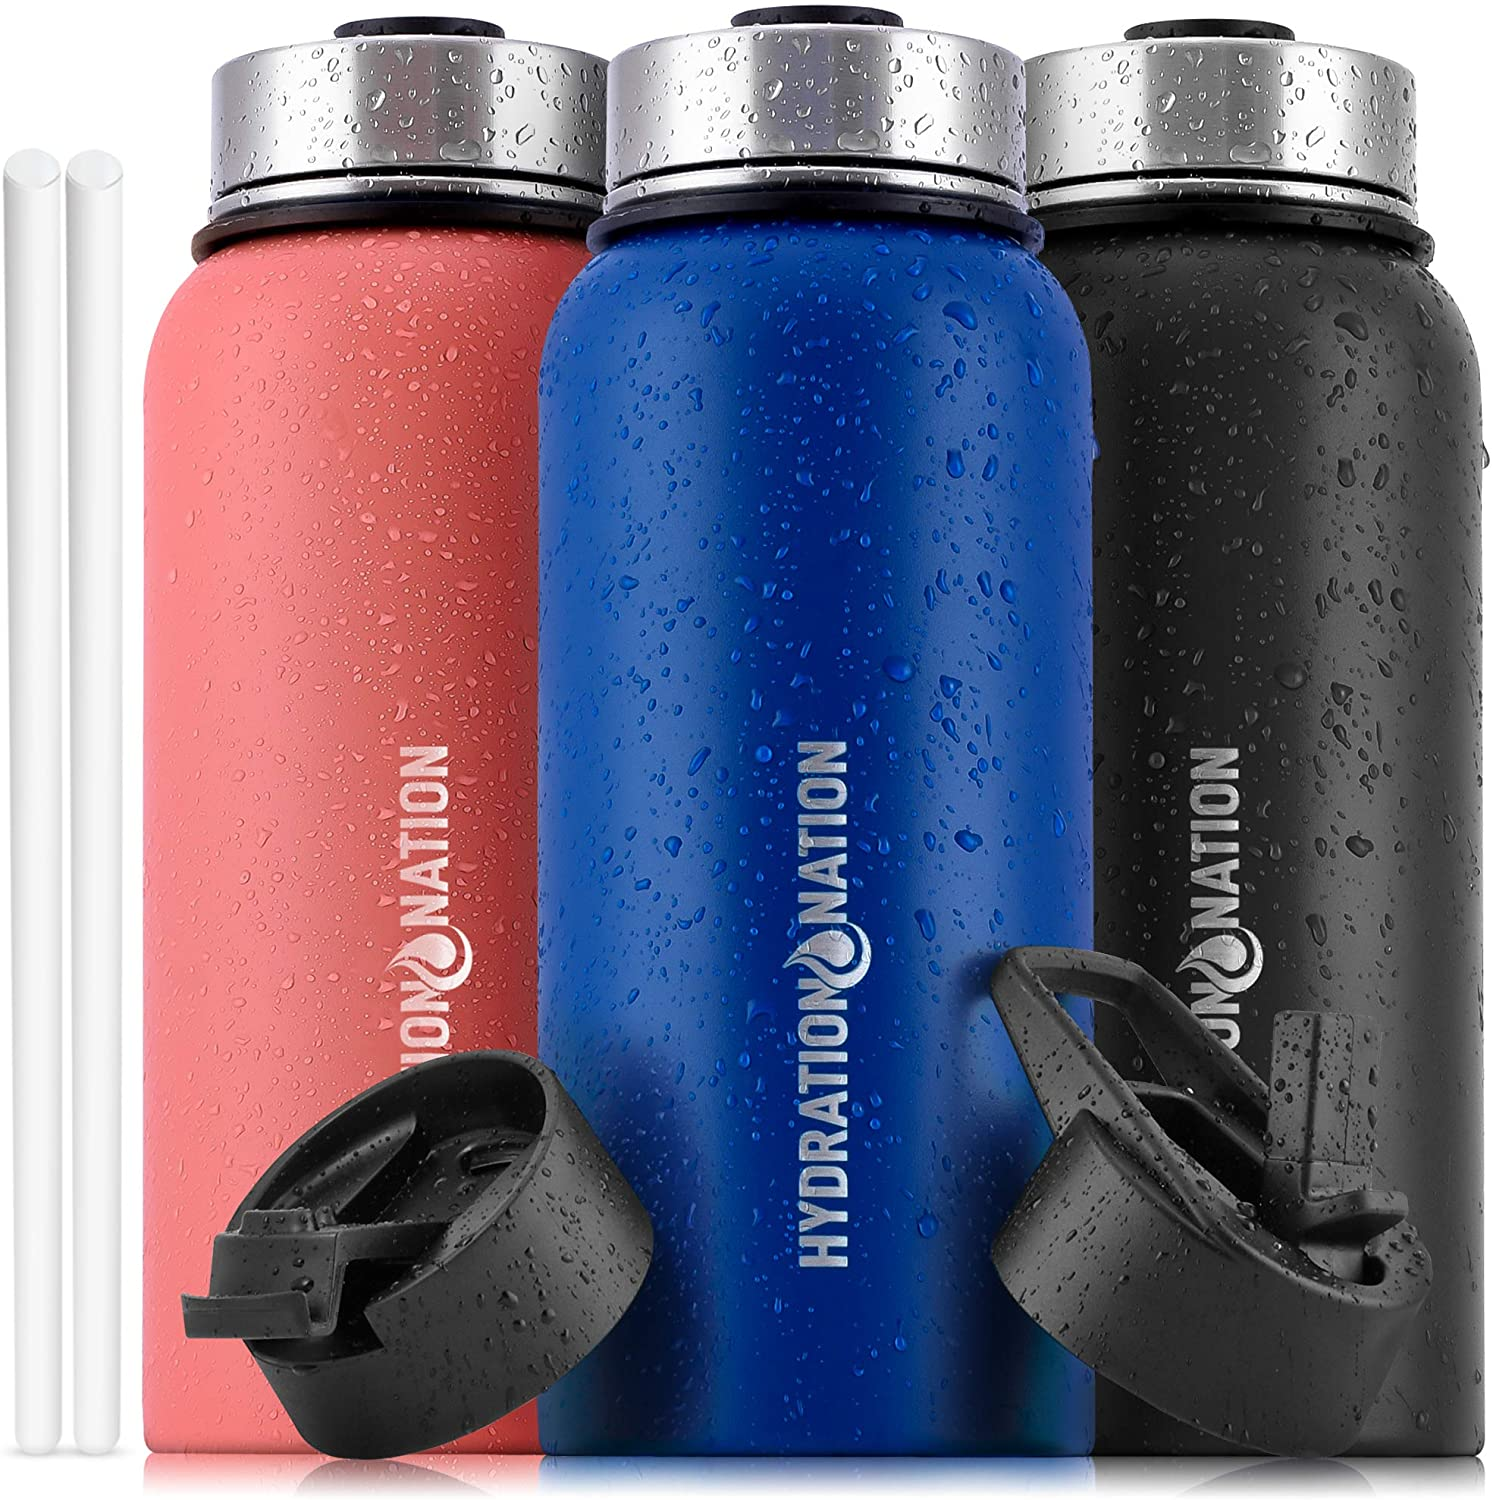 Hydration Nation (32oz) Vacuum Insulated Water Bottle - Durable Metal Water Bottle For Sports & Outdoor - Thermo Stainless Steel Water Bottle With Straw & 3 Lids For Hot & Cold Drinks (Twilight Blue)